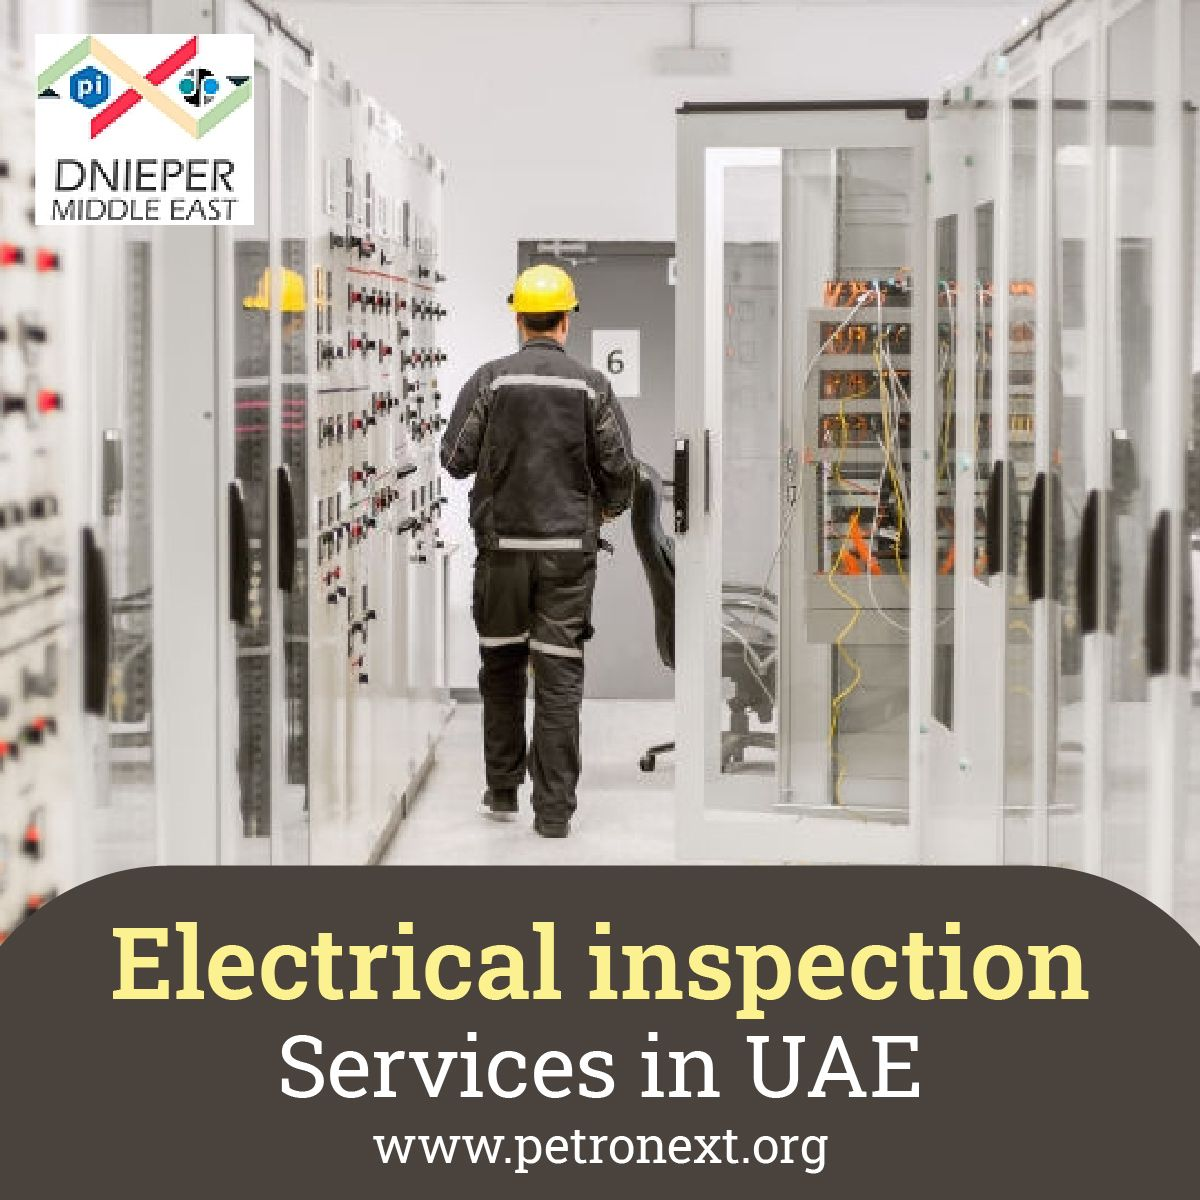 Pin on Electrical inspection services in UAE